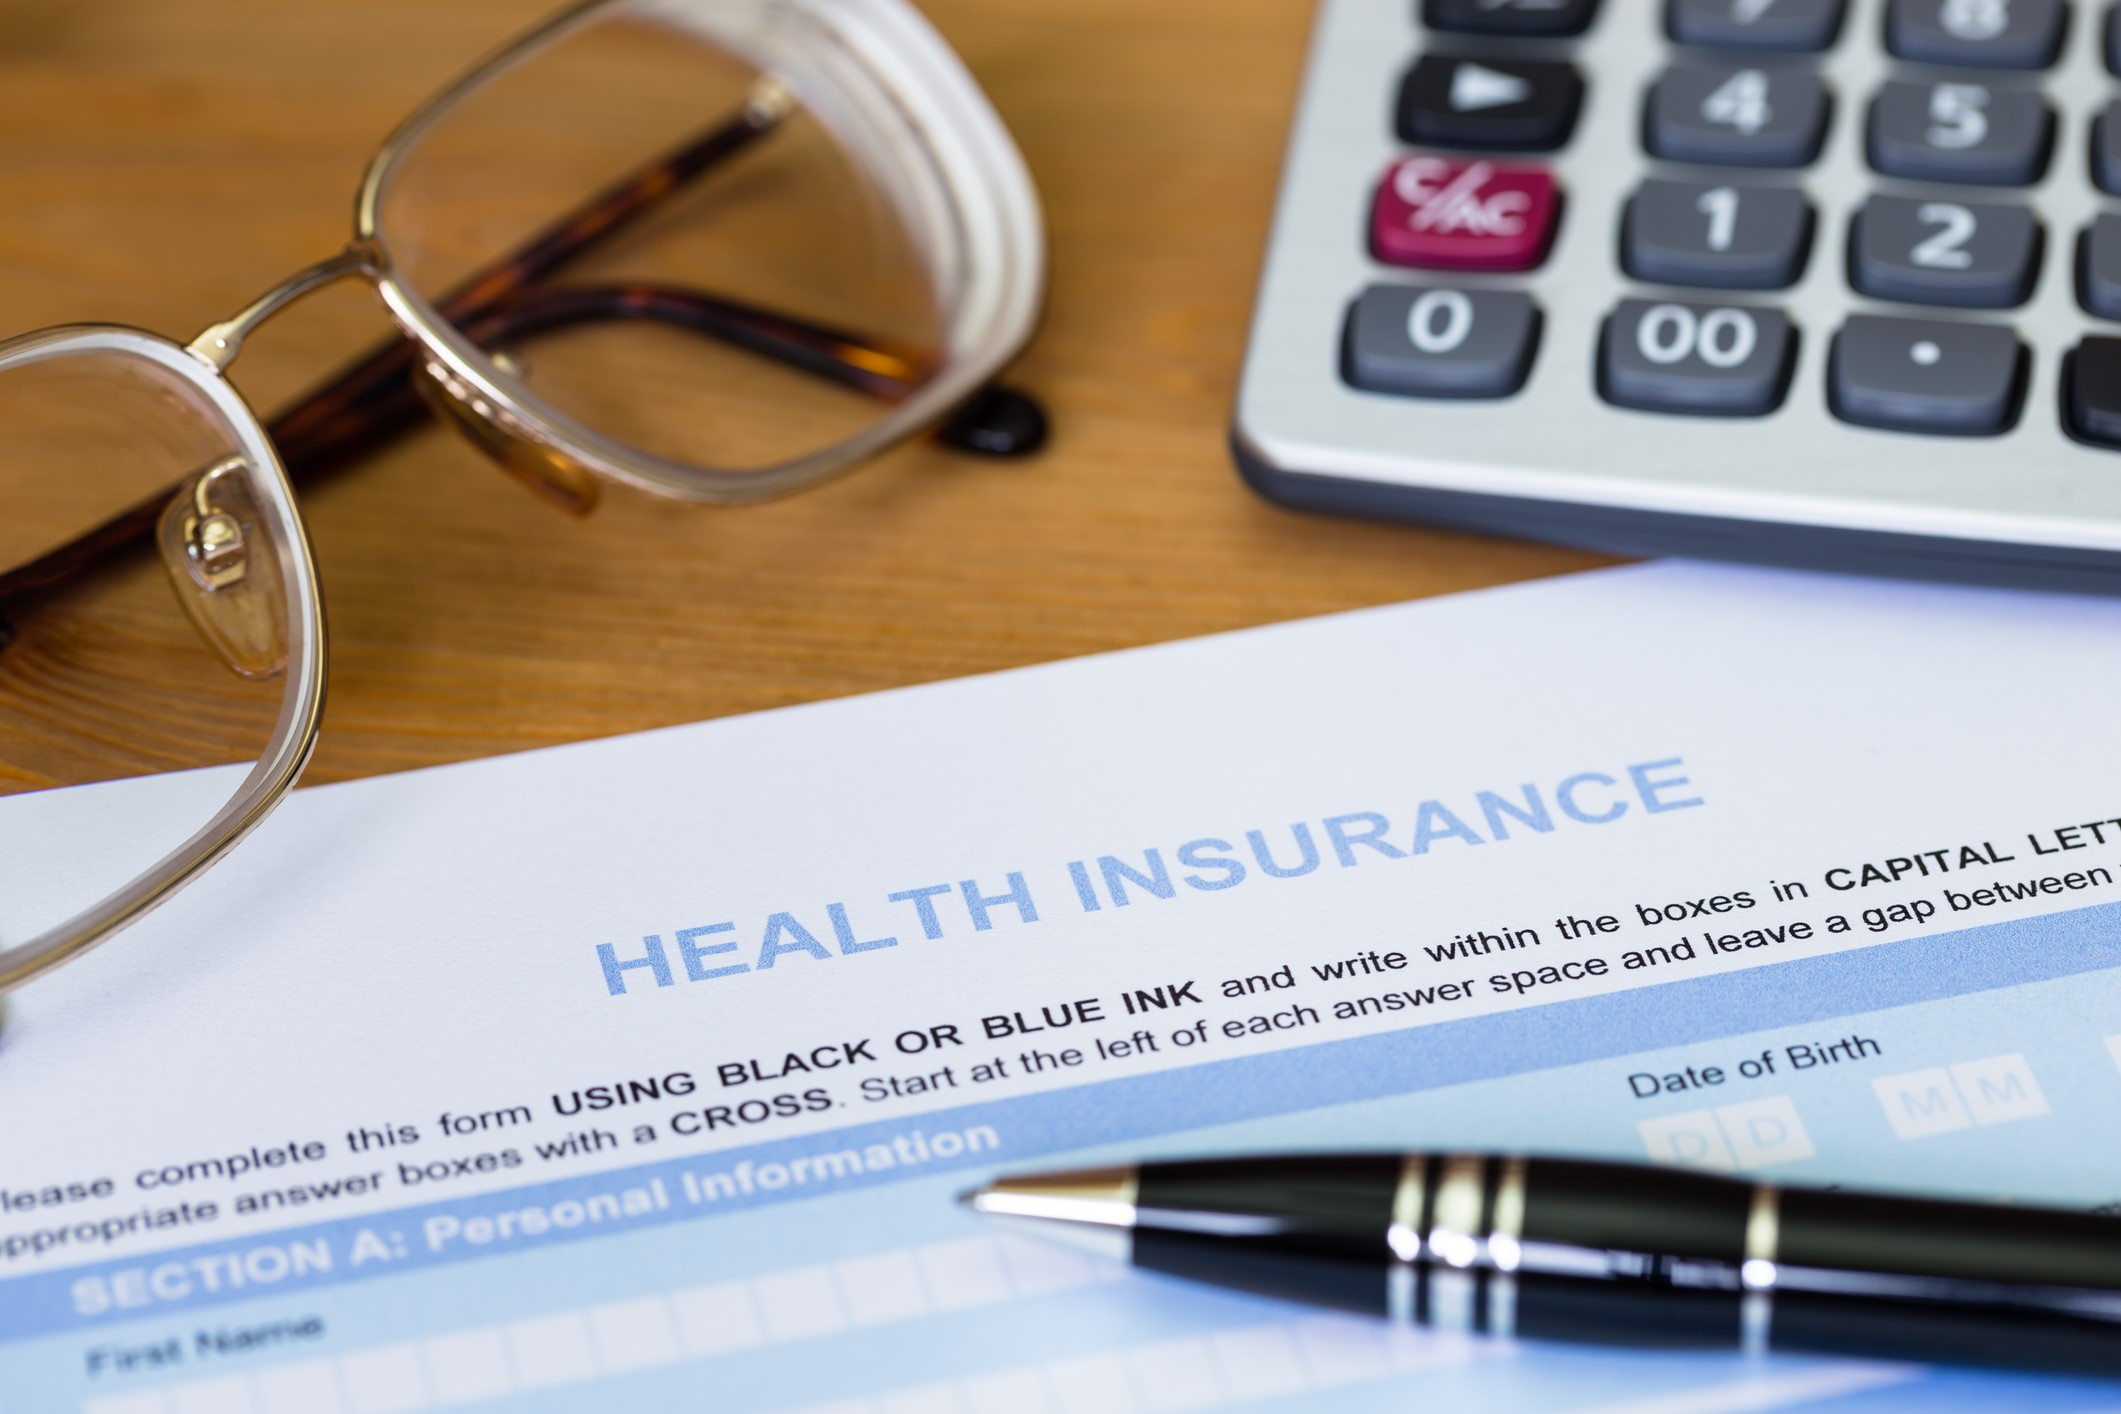 A health insurance form on a desk, with a pair of reading glasses, a calculator, and a black pen around it.